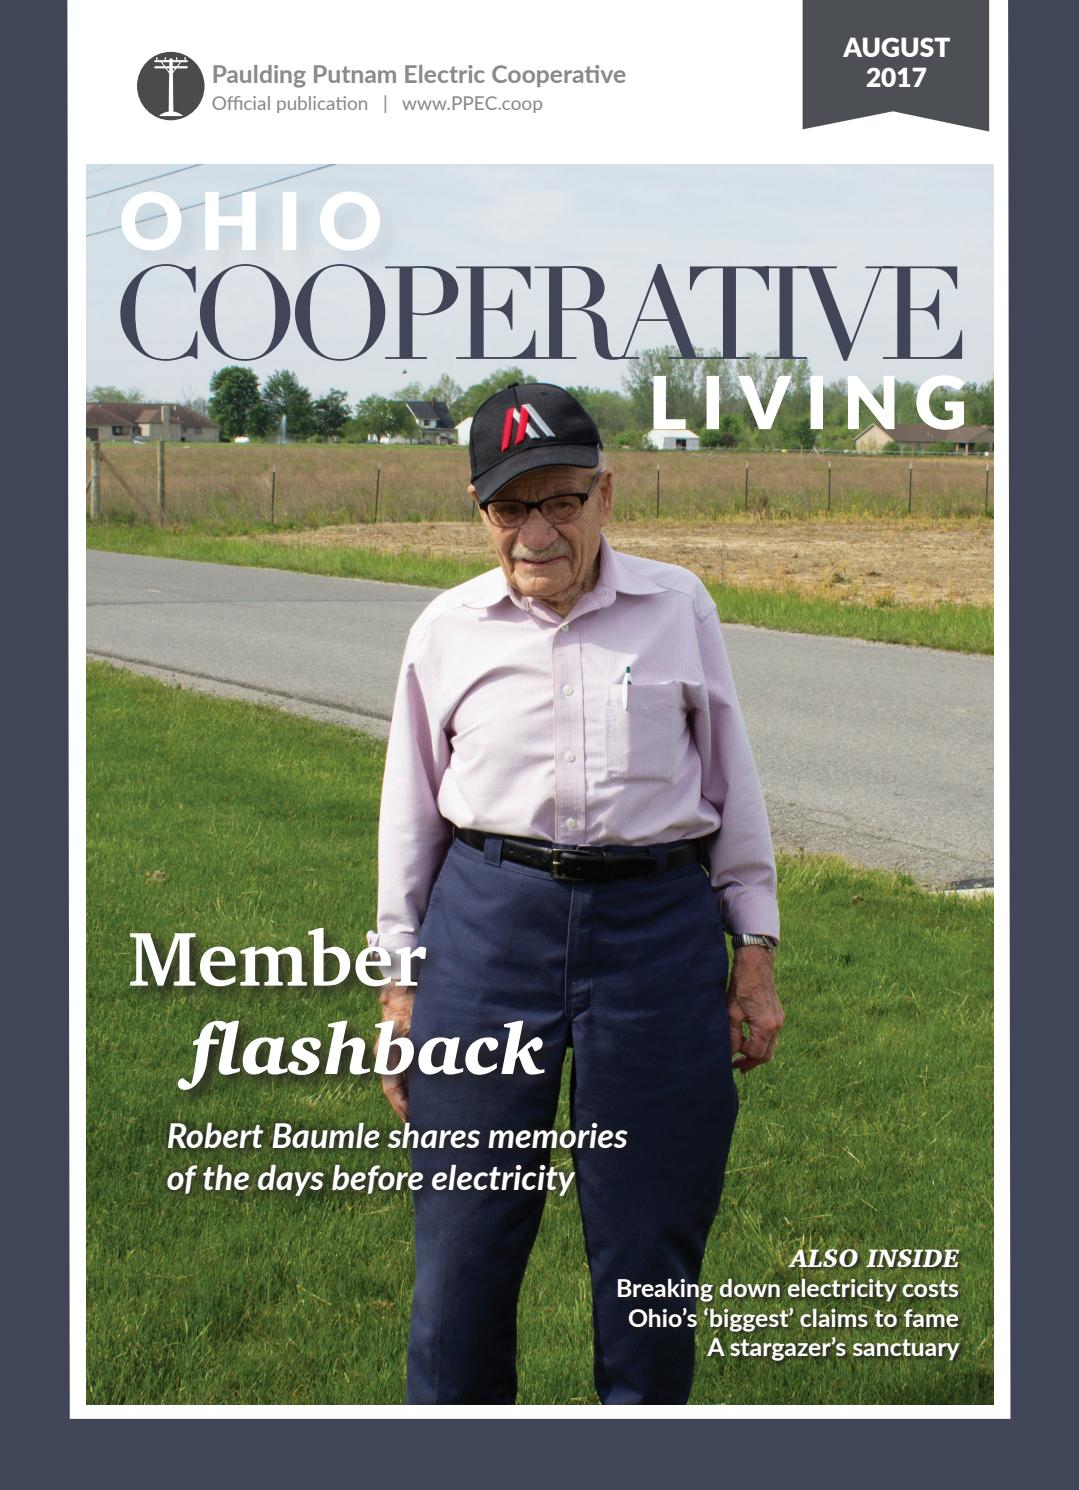 The harold j becker company the moisture protection contractors you - Ohio Cooperative Living August 2017 Paulding Putnam By Ohio Cooperative Living Issuu